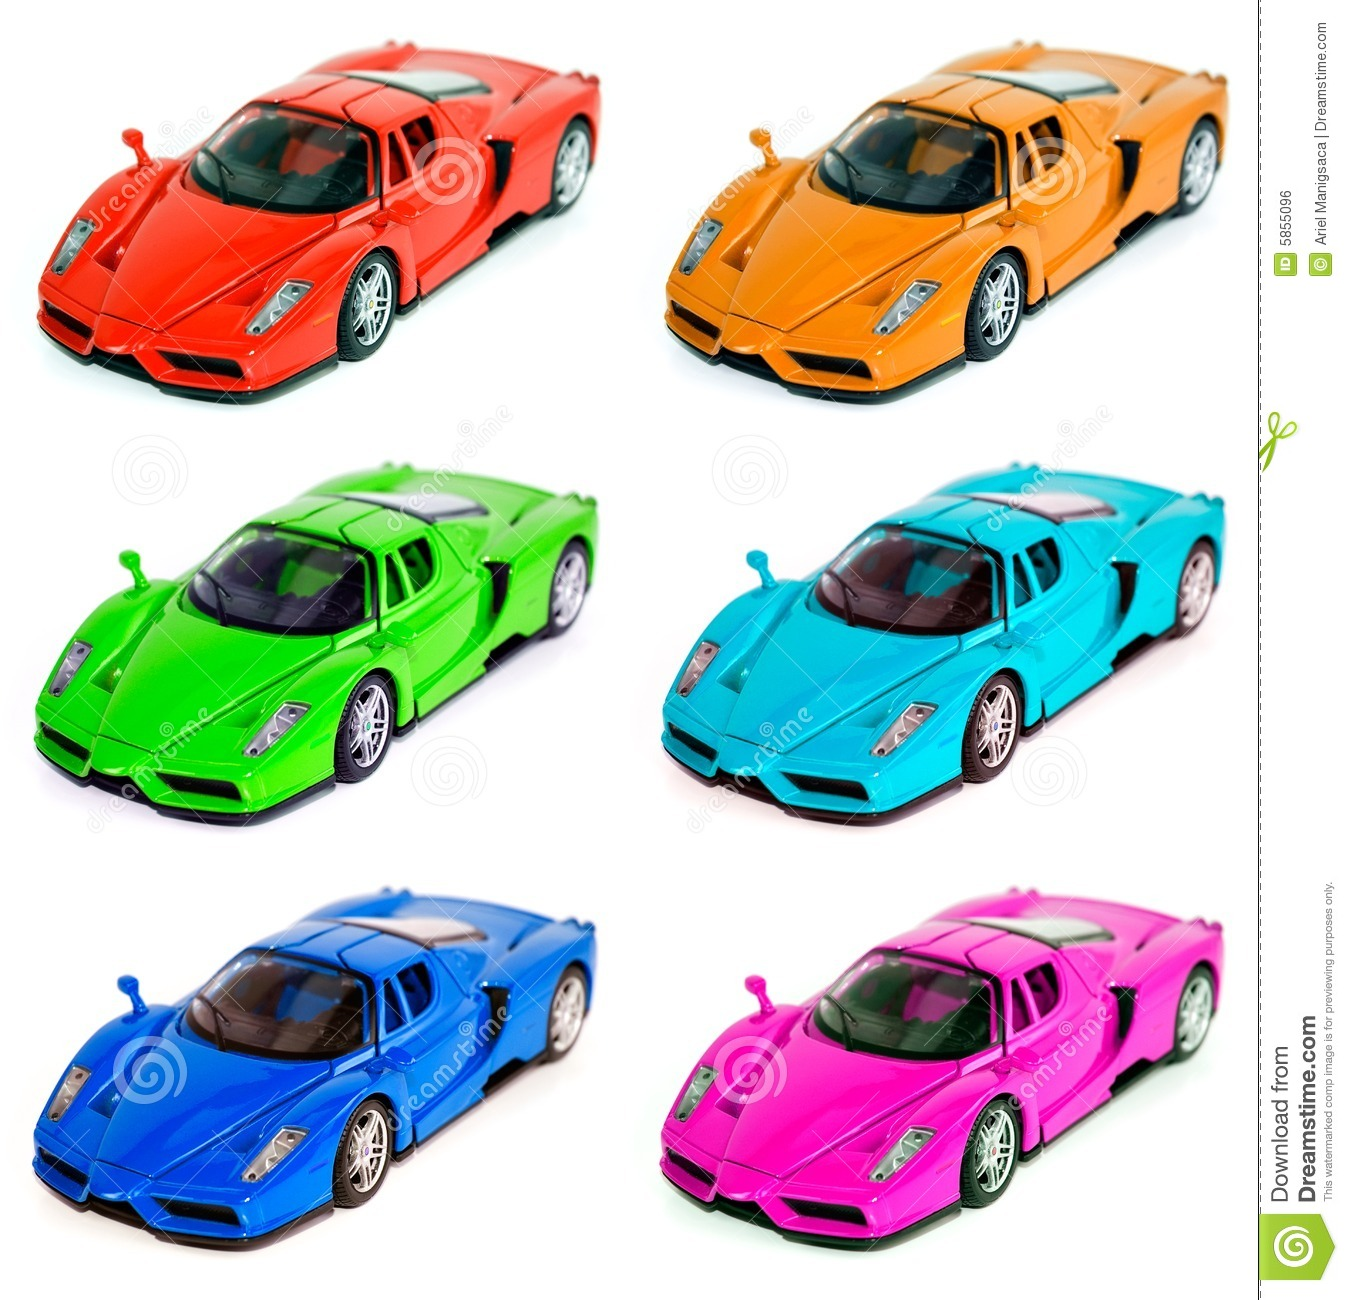 1348x1300 Toy Car Clip Art Toy Car Clipart Toy Sports Car 5855096